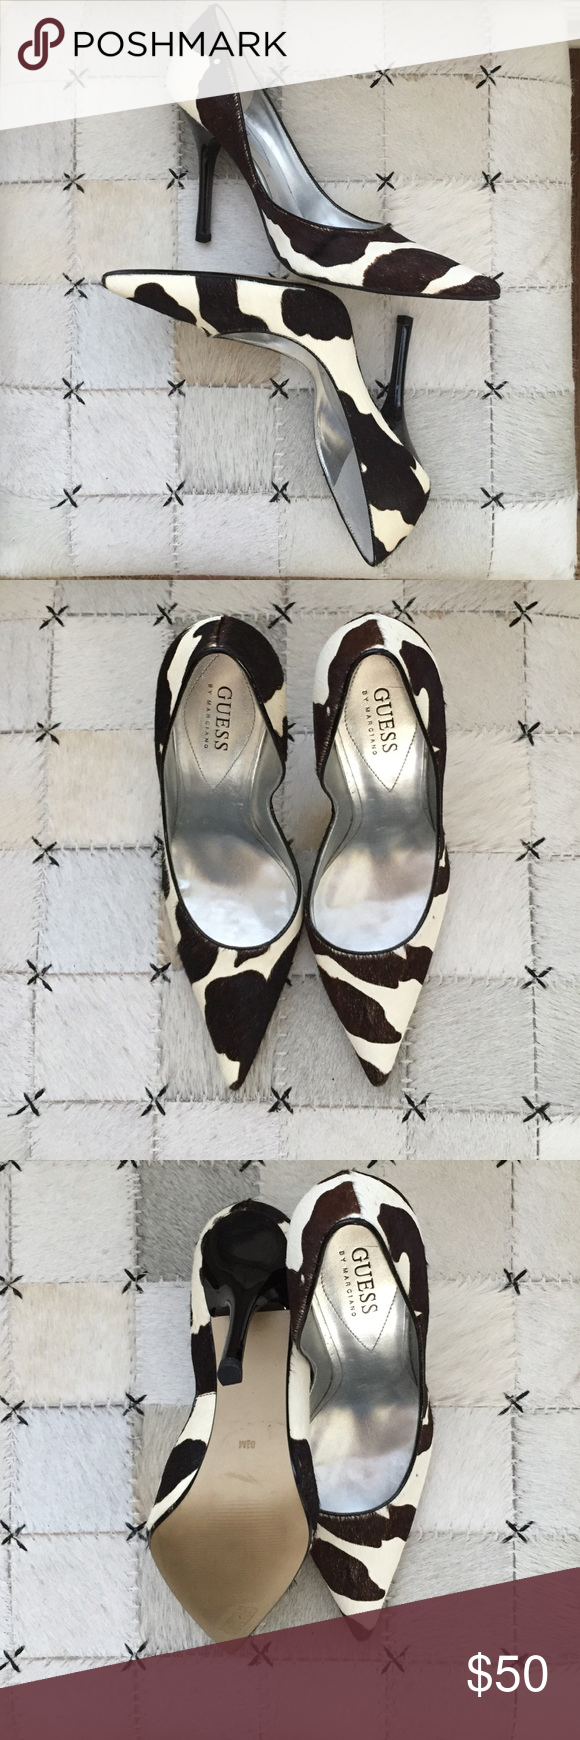 Genuine Cowhide Guess by Marciano Pump Beautiful cowhide pump by Guess with 4 inch heel.  They are Women's size 8.5M. I broke my toe shortly after purchased and haven't been able to wear them. I am finally parting with them although I love them so! Guess by Marciano Shoes Heels